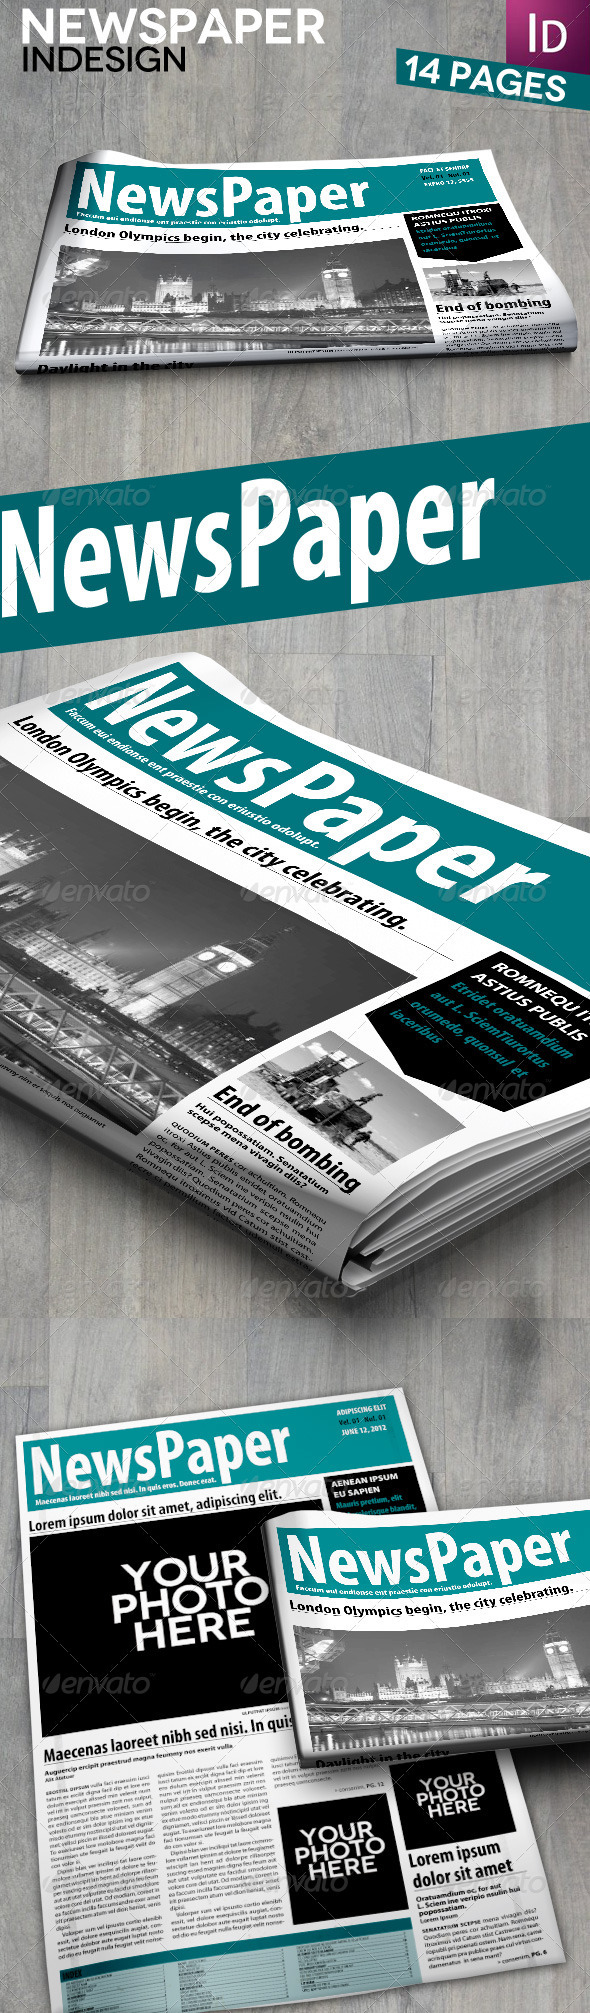 InDesign Newspaper 14 Pages - Newsletters Print Templates